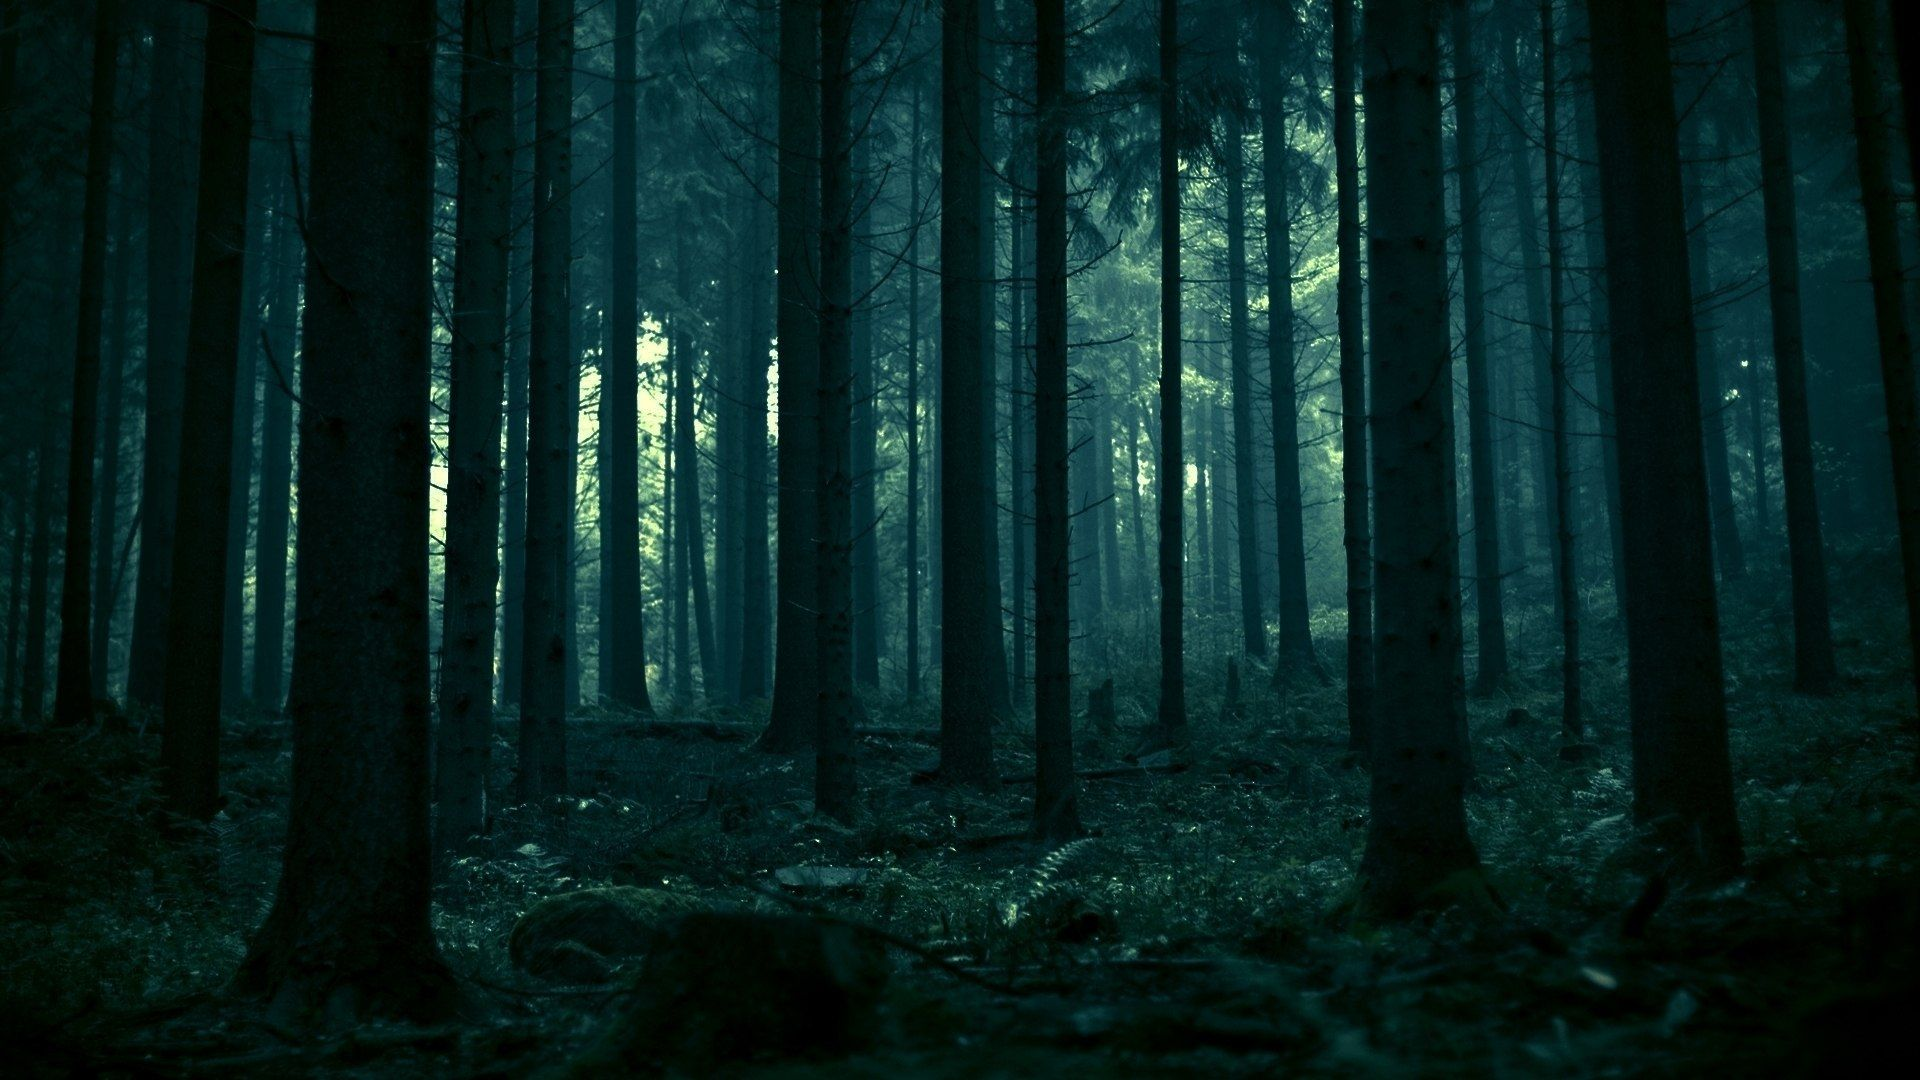 Dark Forest Wallpaper 1920x1080 Jpg 1920 1080 Forest Wallpaper Dark Forest Forest Background Choose from over a million free vectors, clipart graphics, vector art images, design templates, and illustrations created by artists worldwide! dark forest wallpaper 1920x1080 jpg